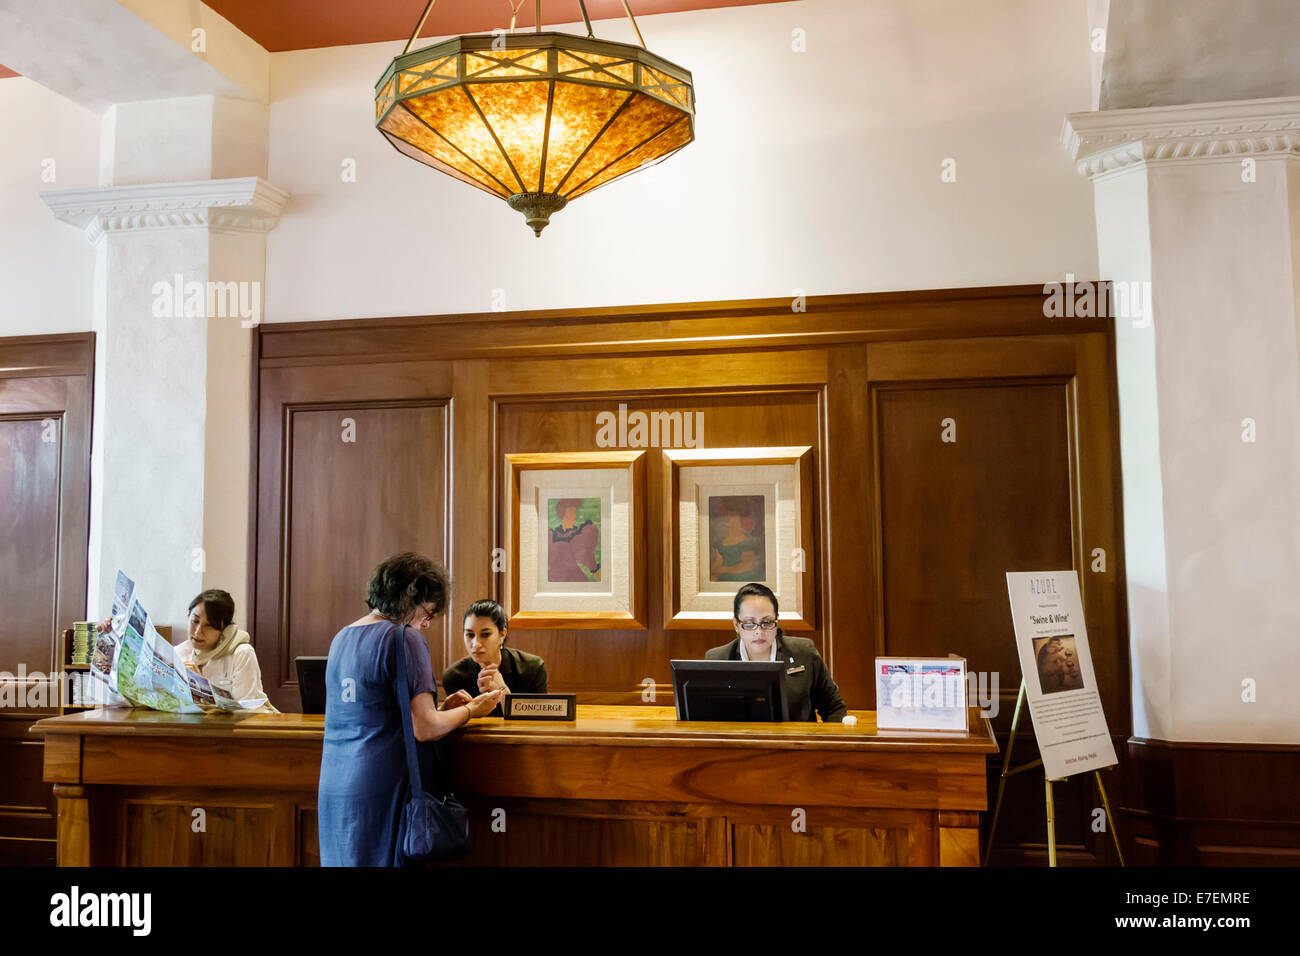 Royal Hawaiian Hotel Stock Photos & Royal Hawaiian Hotel Stock ...